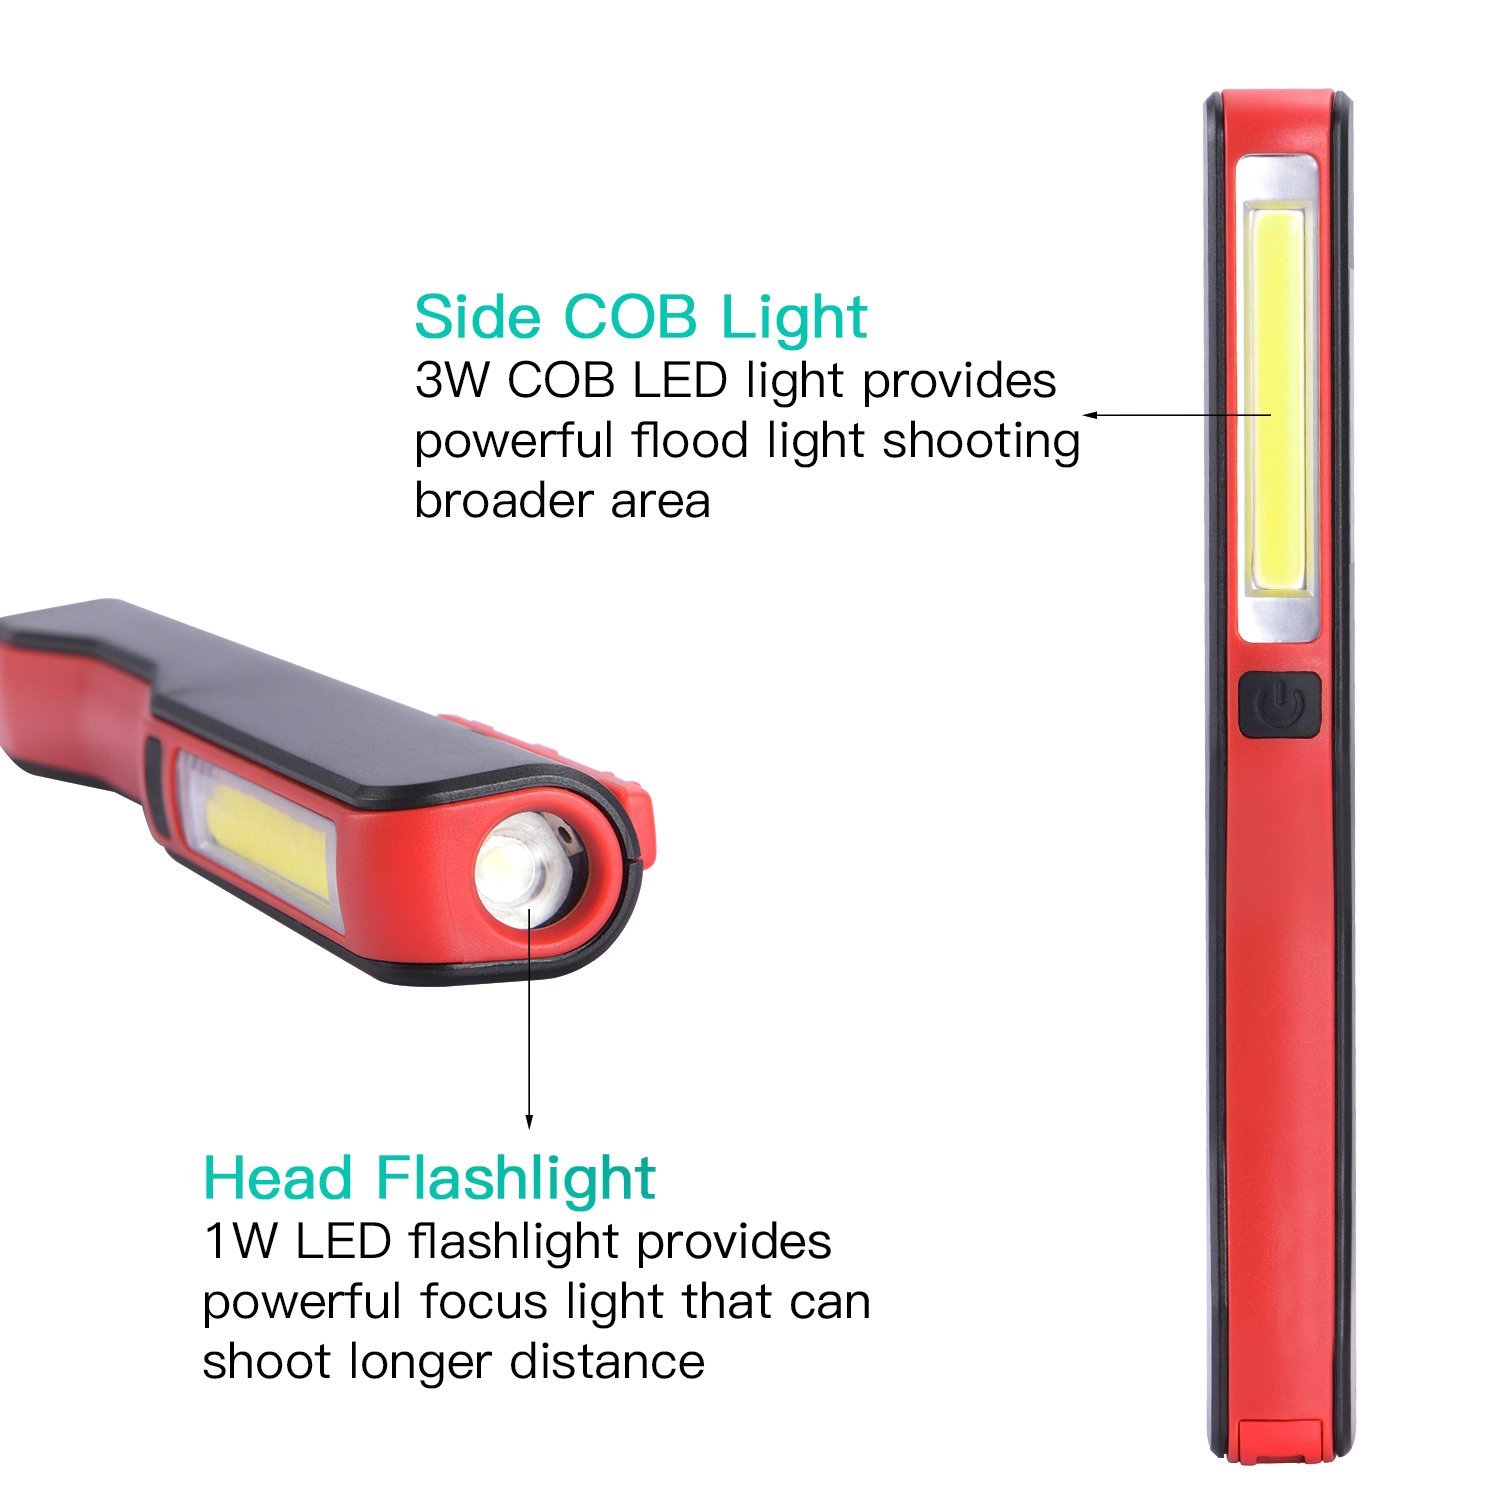 COB LED Work Light, Rechargeable Mechanic Inspection Lamp Worklight Portable Hand Pocket Pen Flashlight Flood Beam with Rotating Magnetic Strip Clip for Household, Workshop, Camping, Car Repairing by Ausein (Image #2)